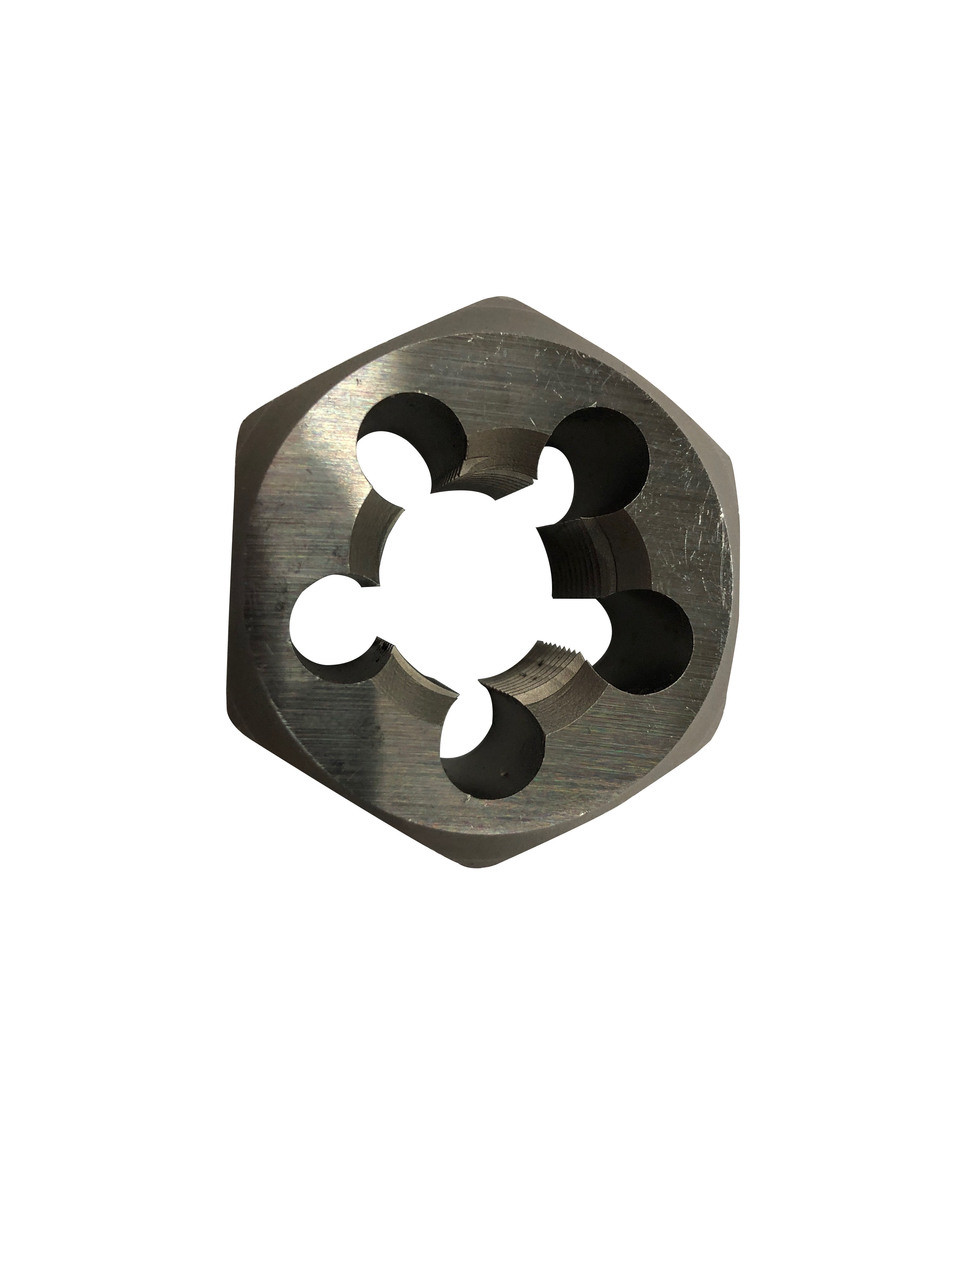 Hex Die Special Thread Fractional 3-4 Carbon Steel